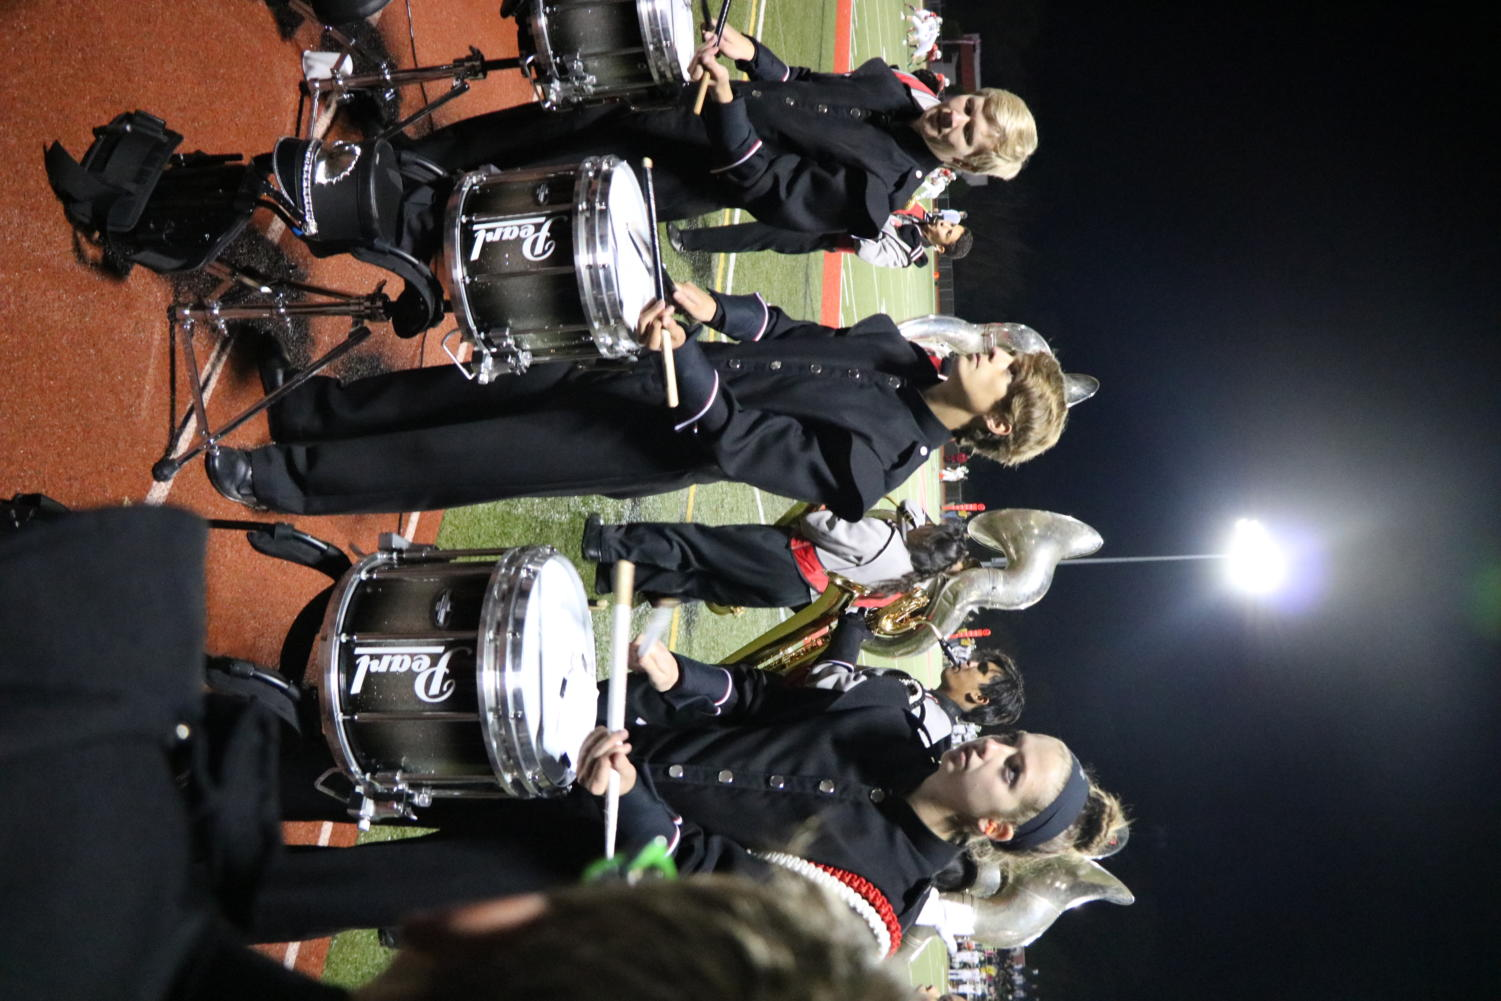 Pictured is senior Jillian Hoffstadt as she plays her drums to the beat of a song at a football game during the 2018 fall season.